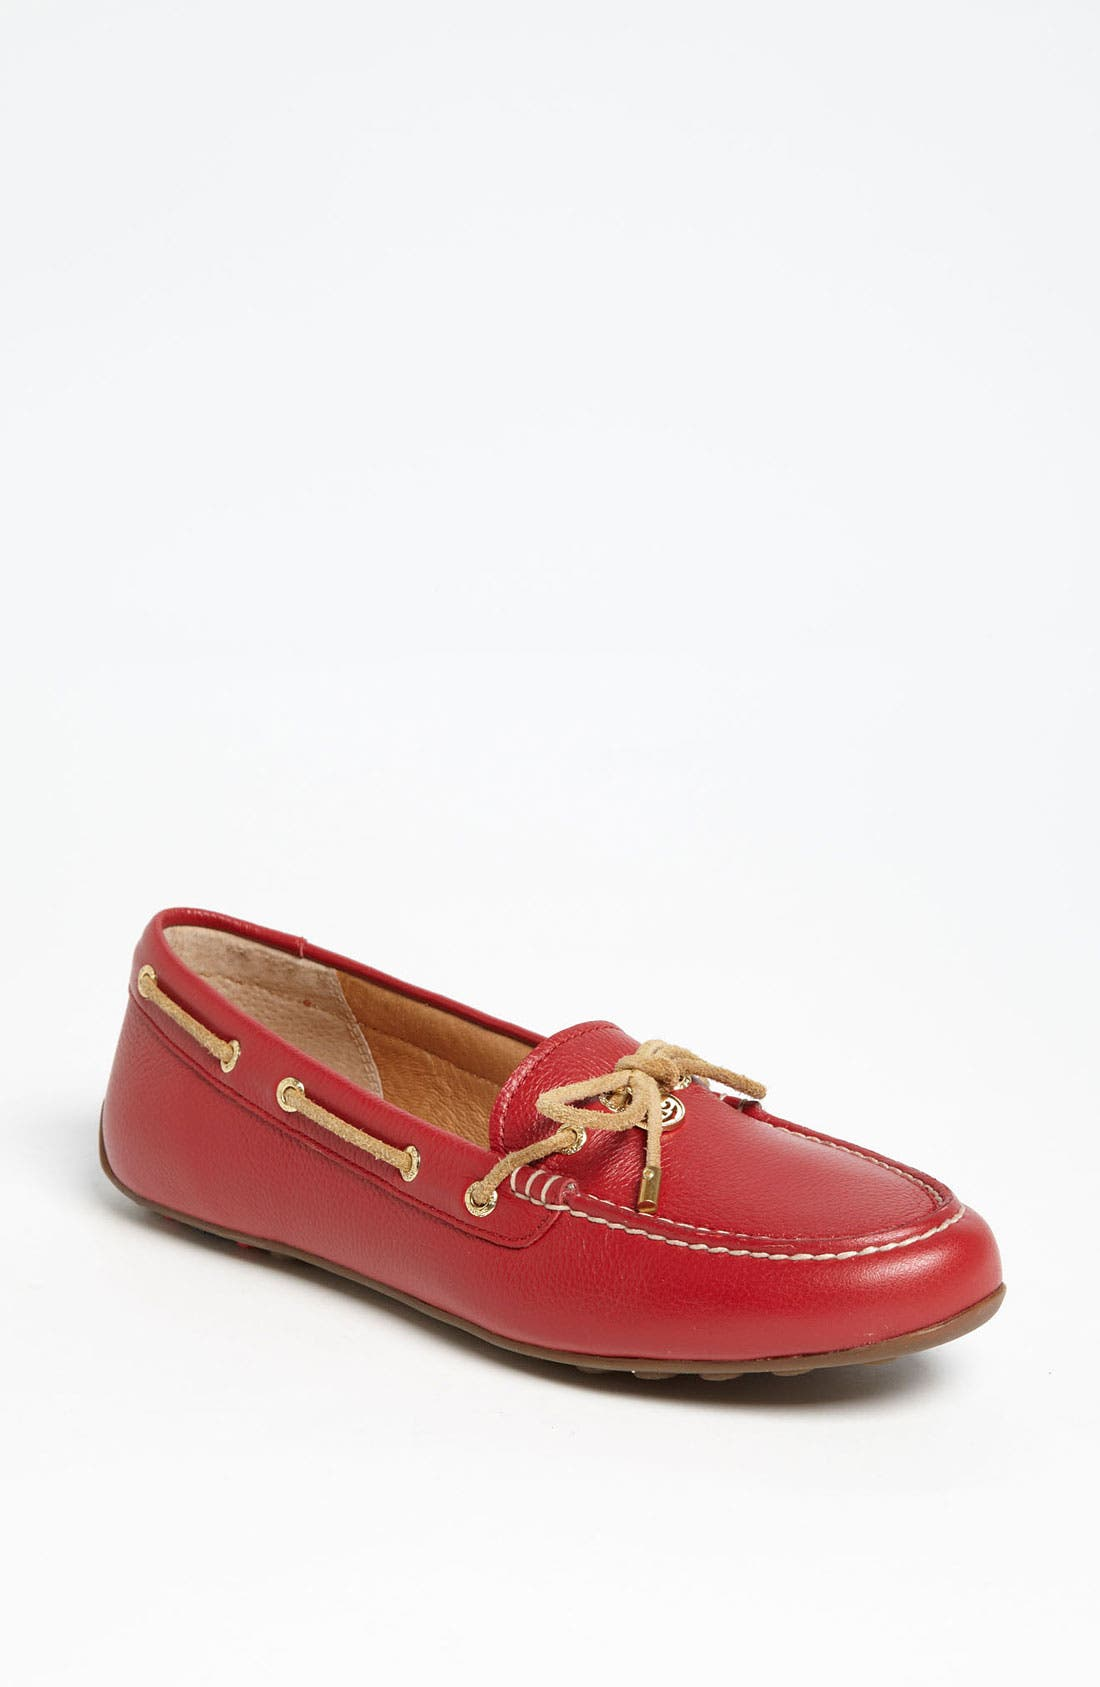 Alternate Image 1 Selected - SPERRY TOP-SIDER LAURA MOCASSIN